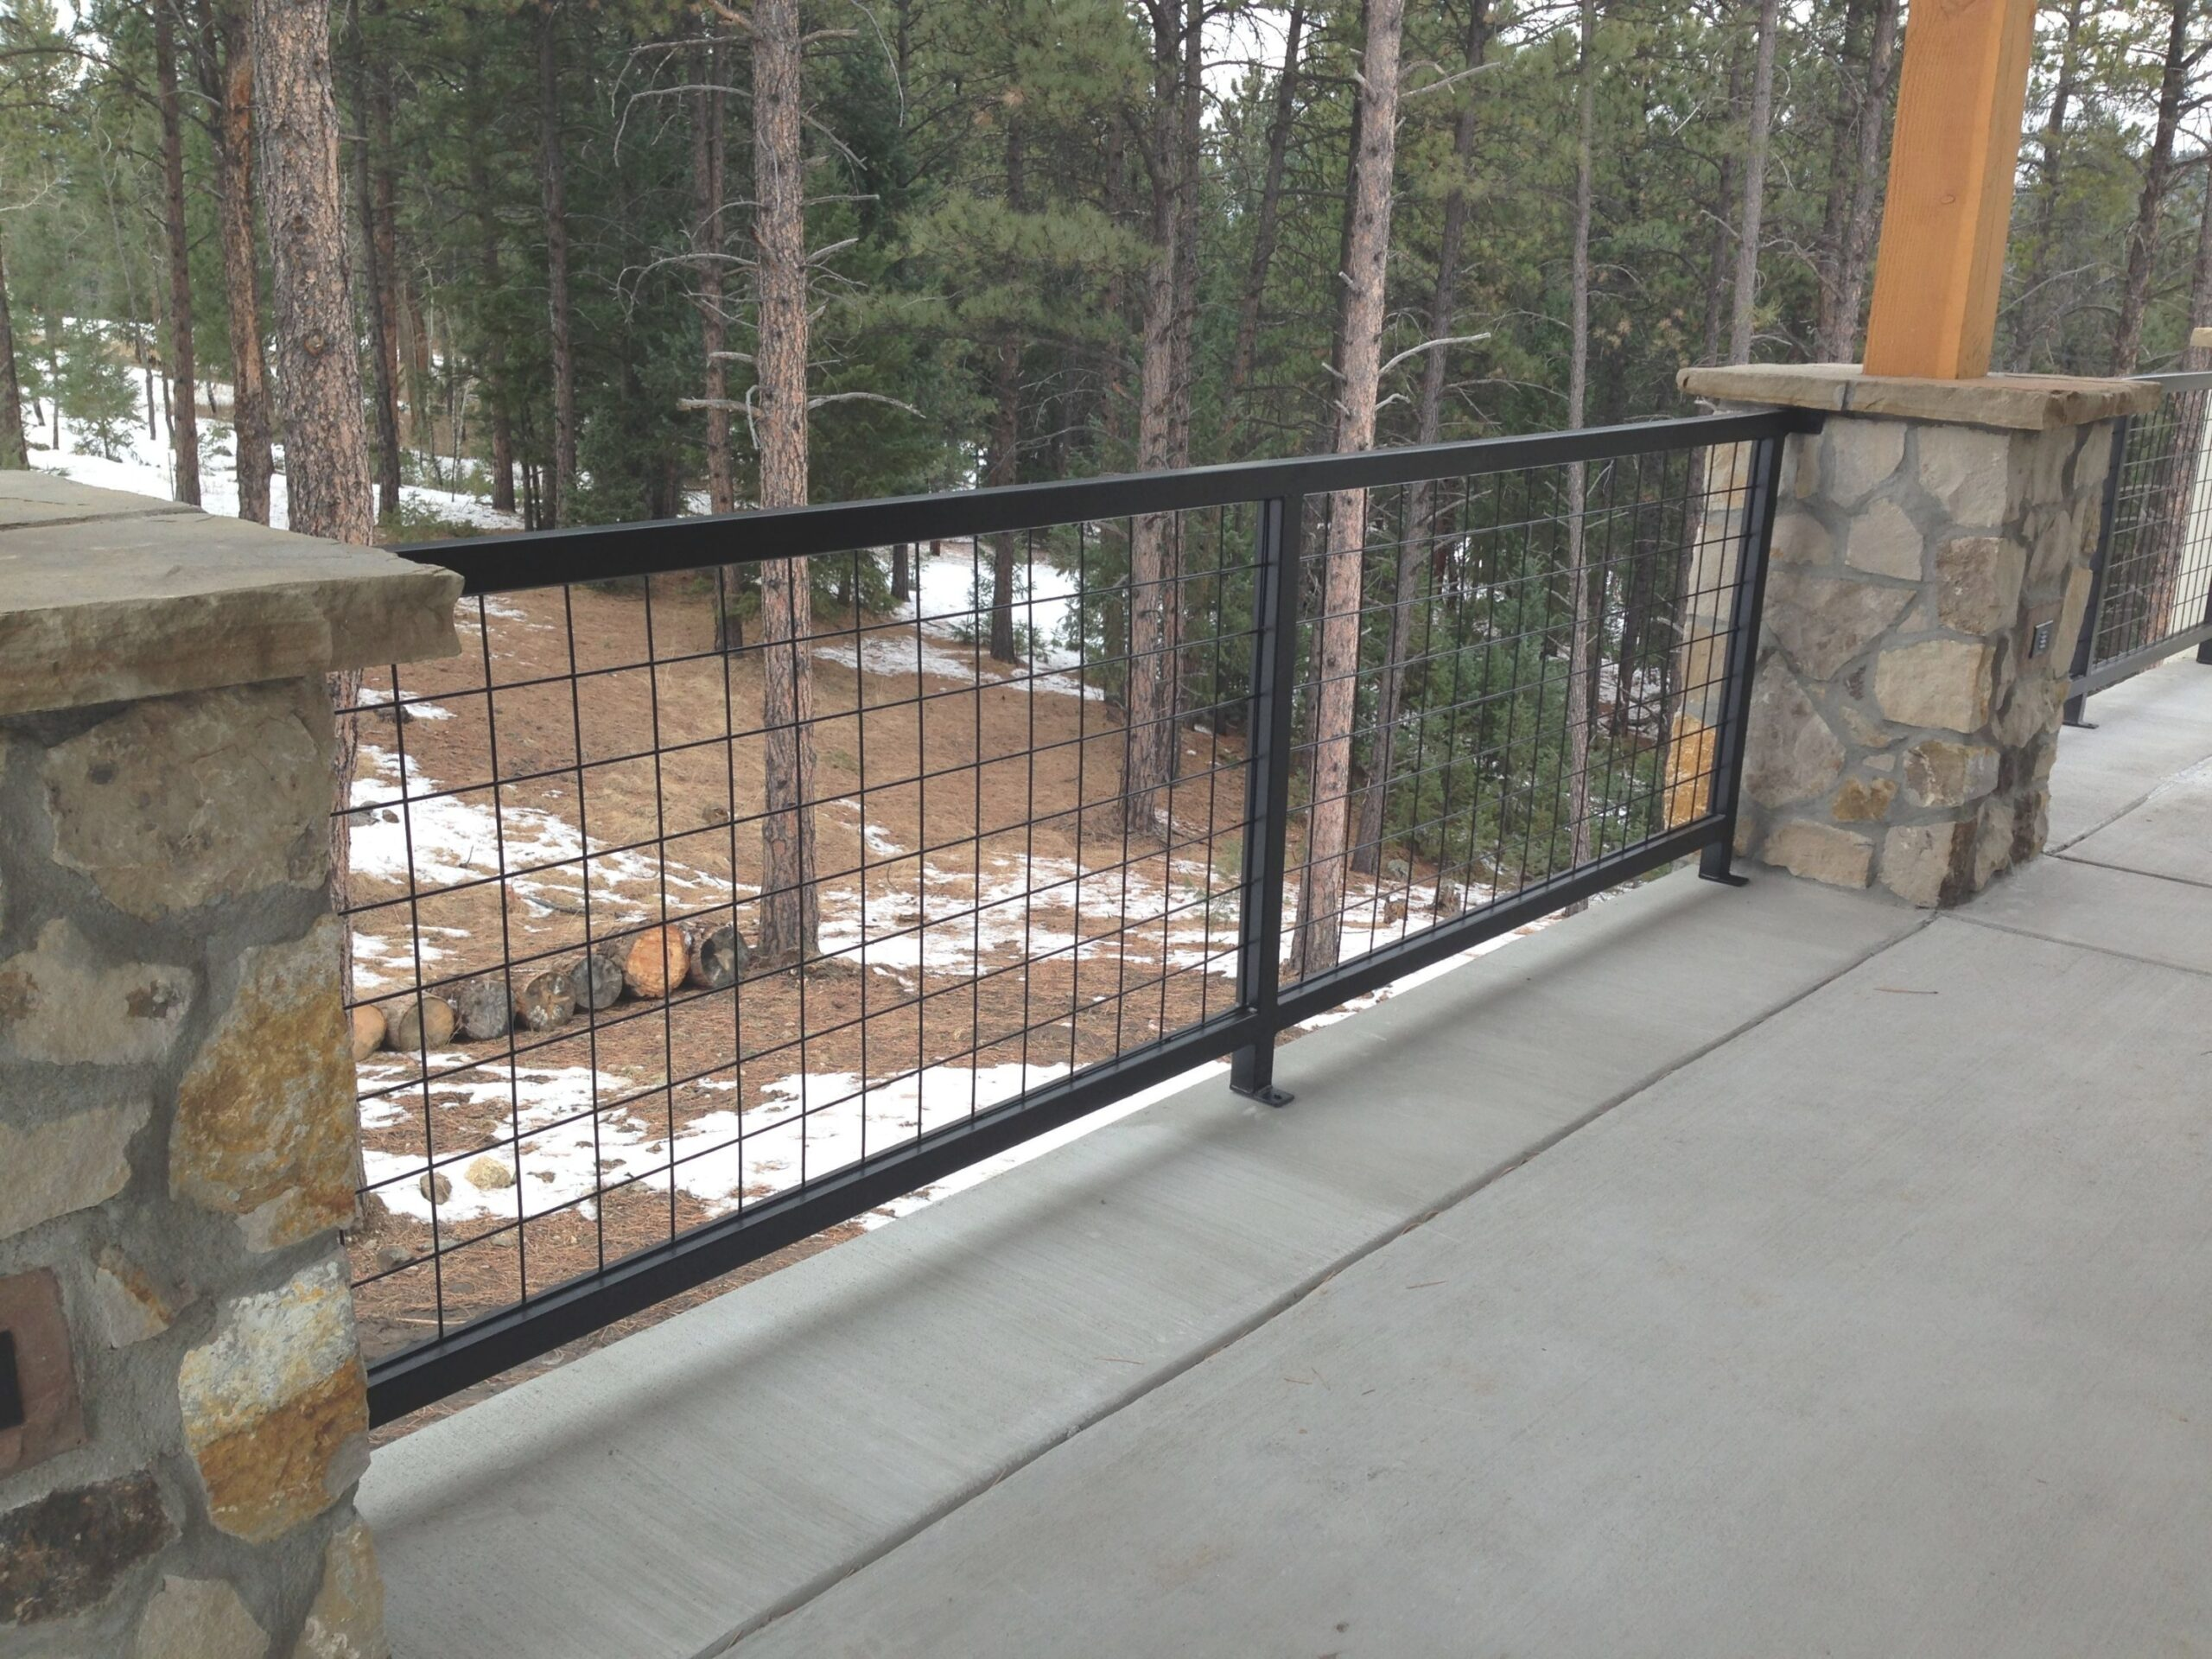 Hog Wire Deck Railing Astonishing On Modern Home Decor within Hog Wire Deck Railing